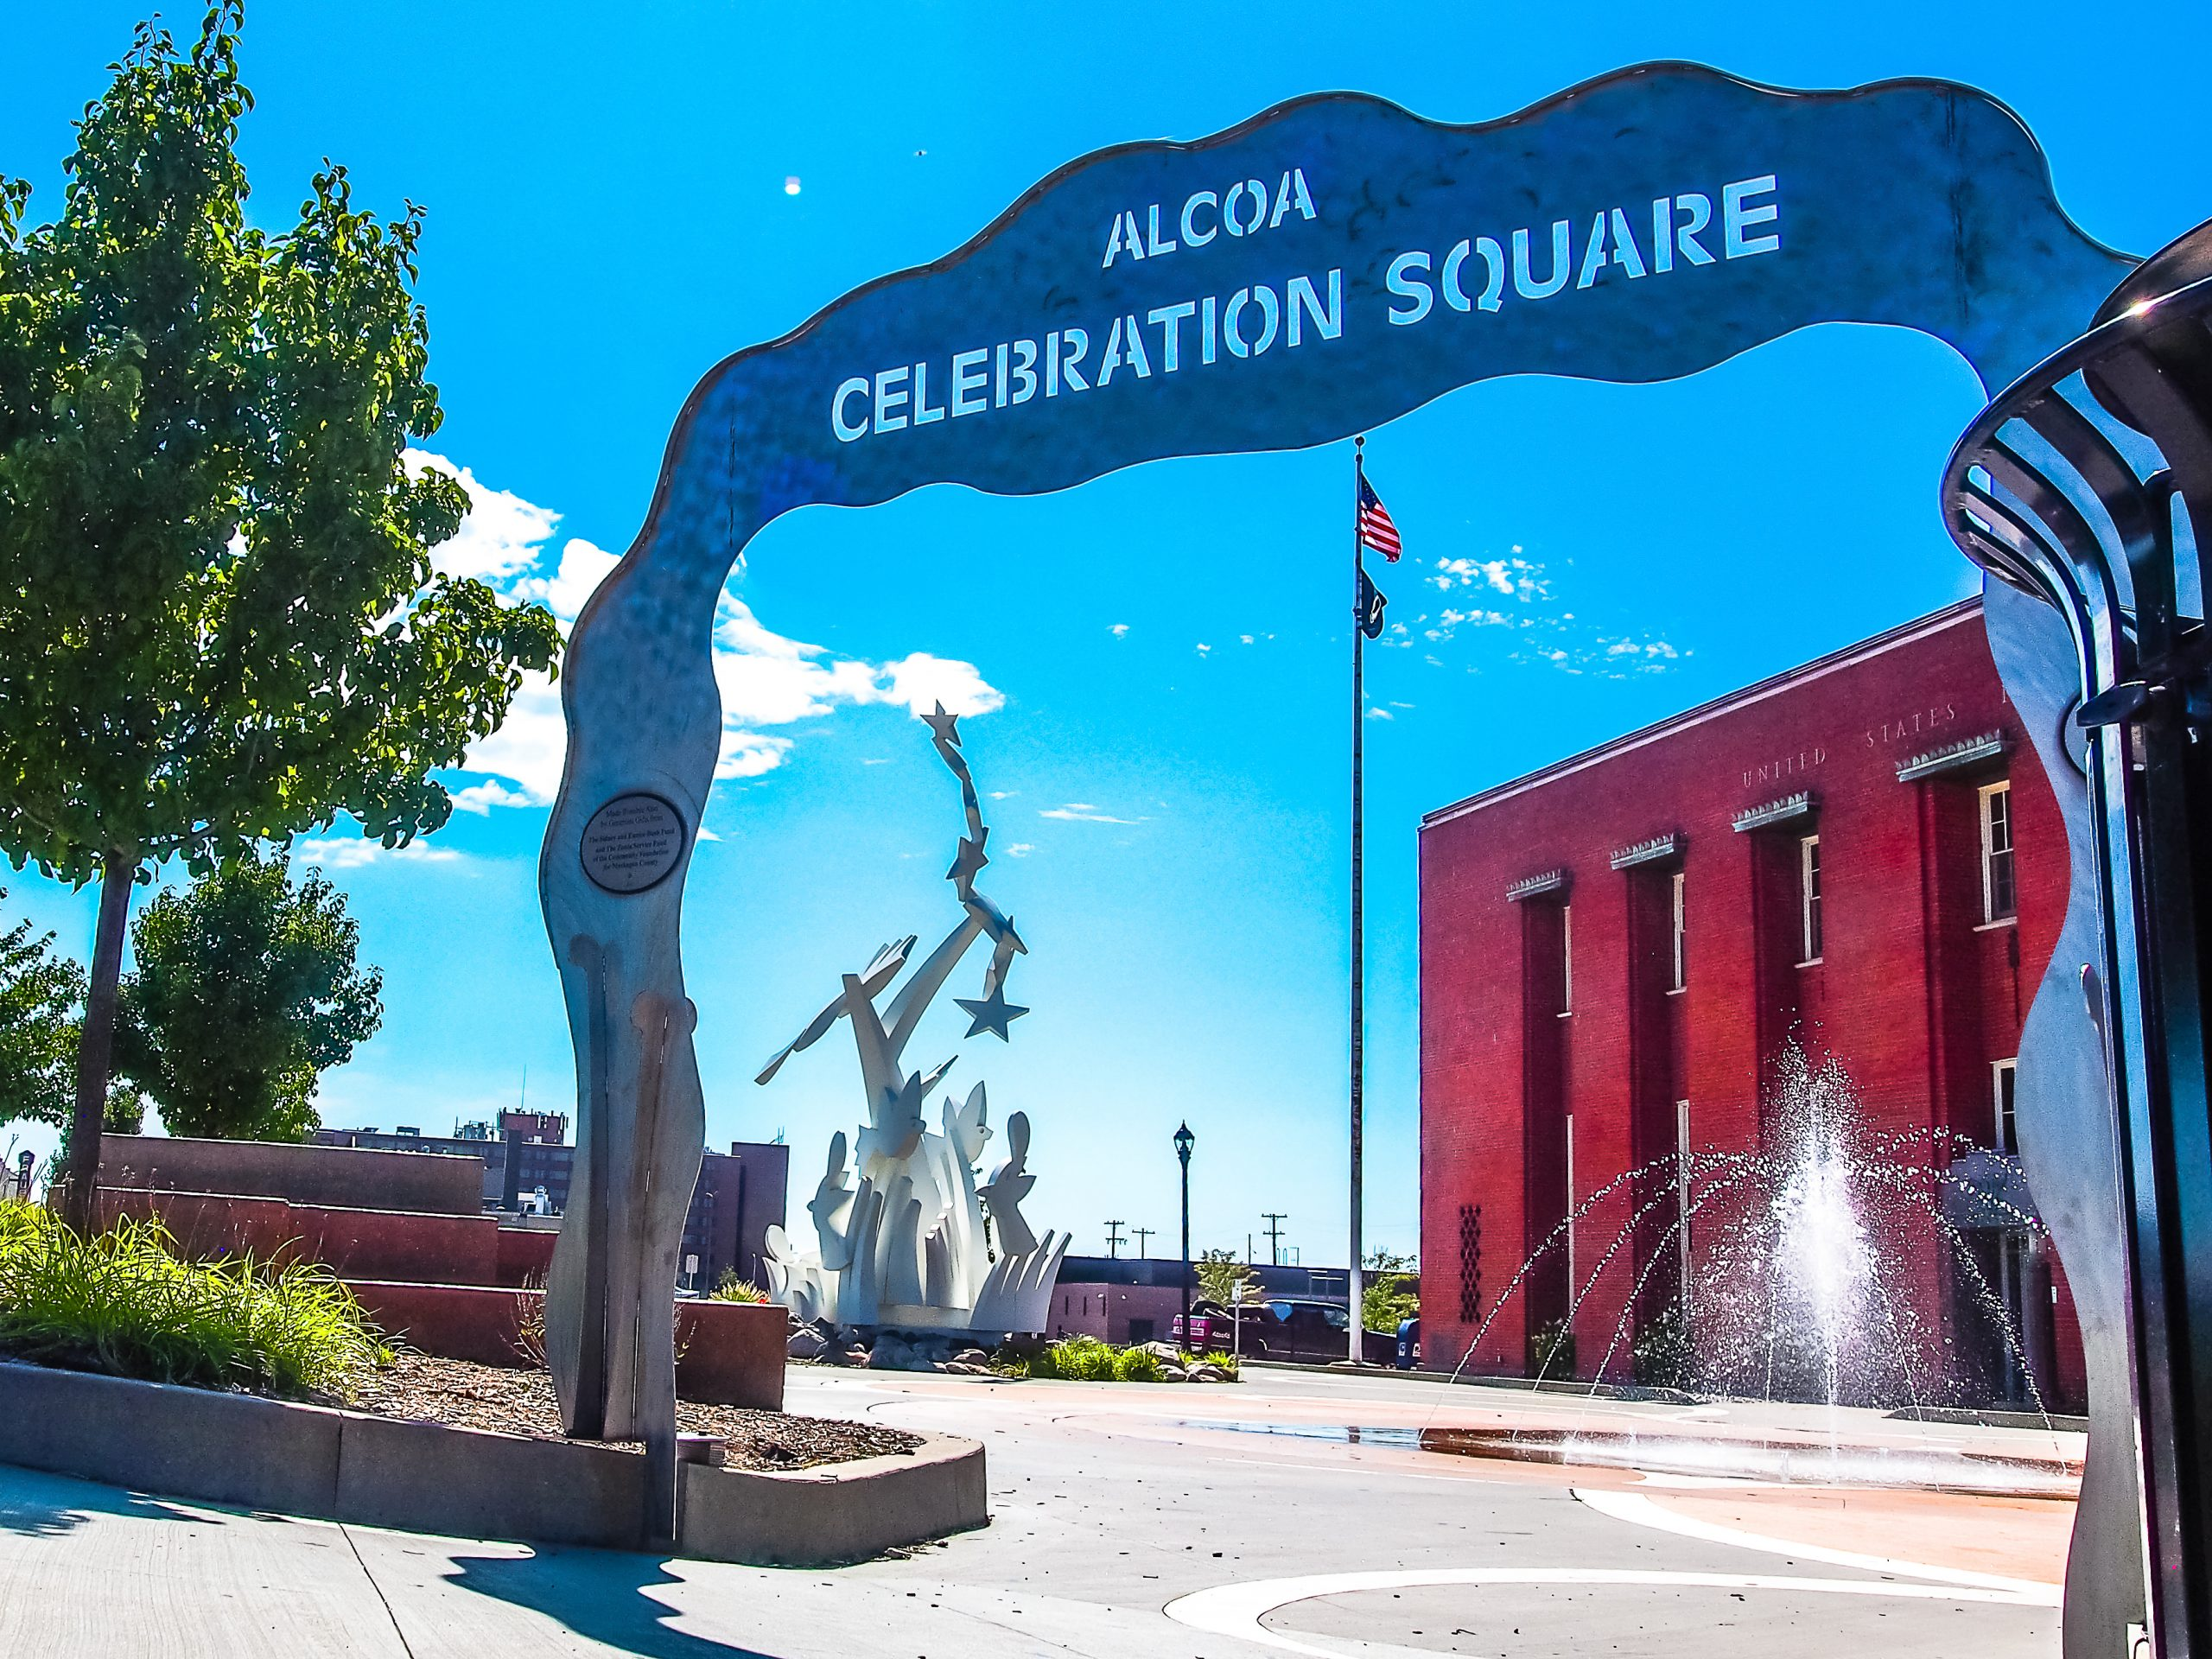 Steel arch entrance with alcoa celebration squre carved at top. red brick building, fountain and white sculpture lay behind.